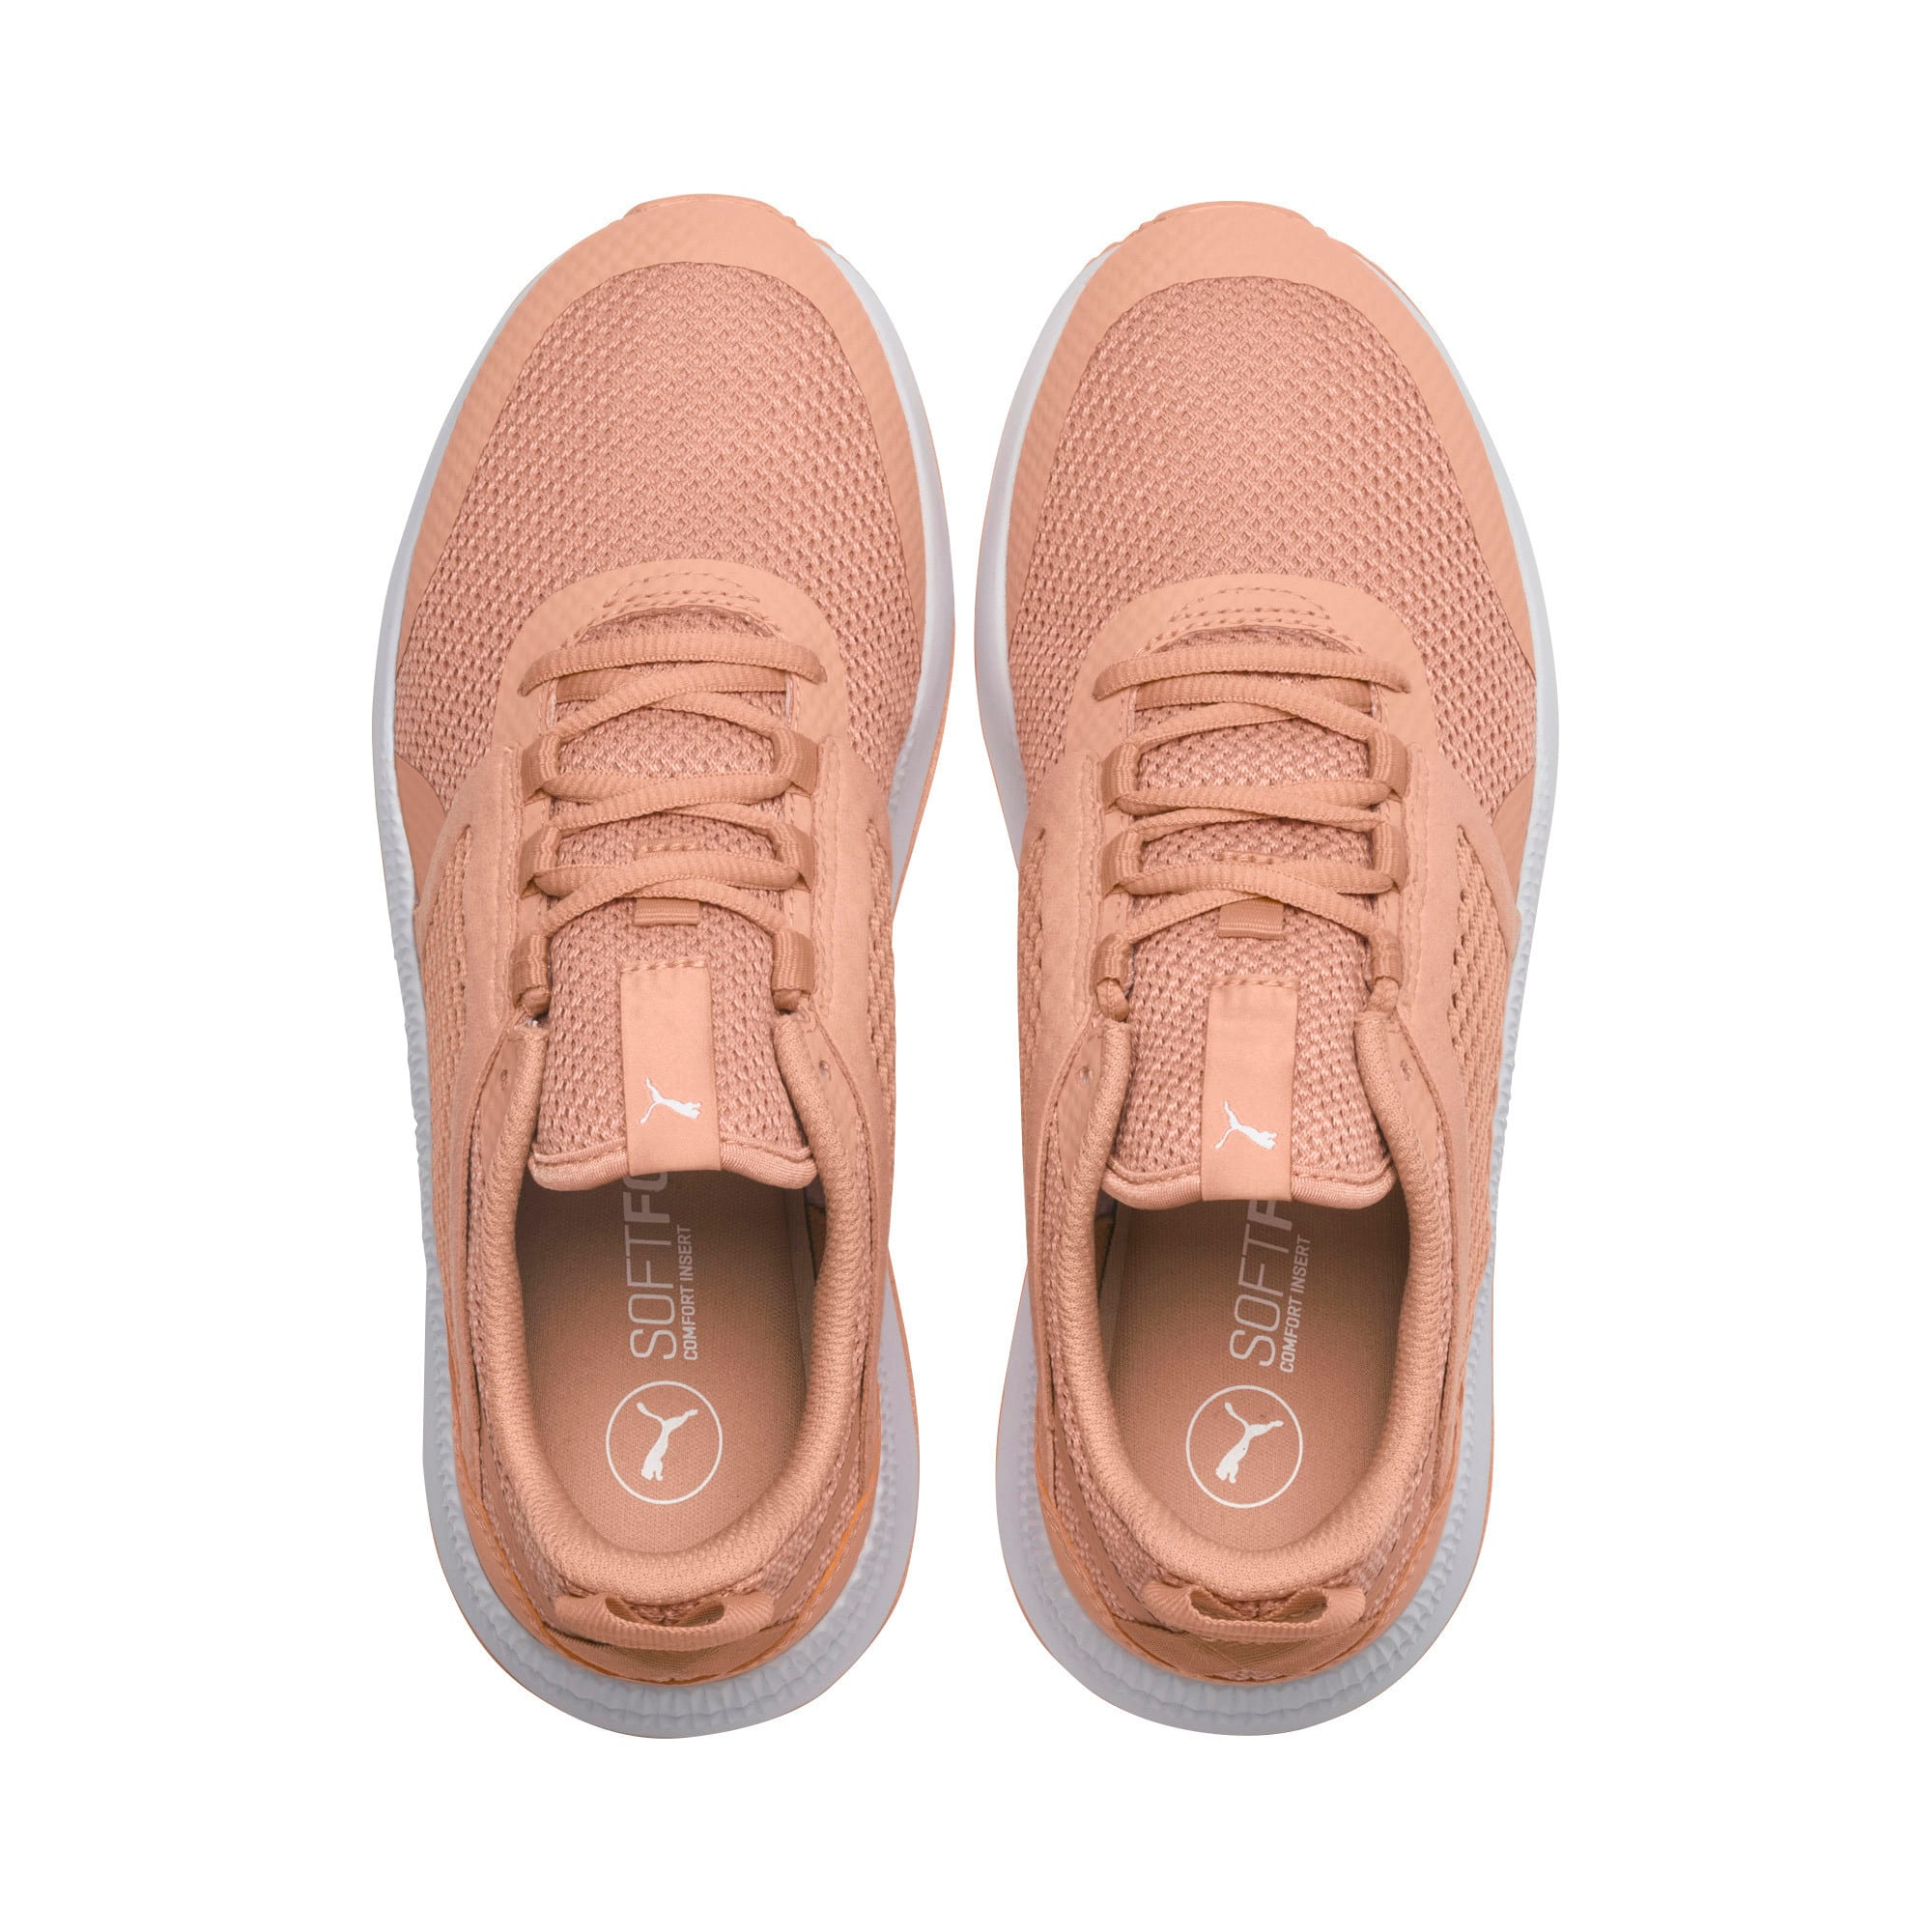 Thumbnail 6 of Pacer Next Net Trainers, Dusty Coral-Coral-White, medium-IND